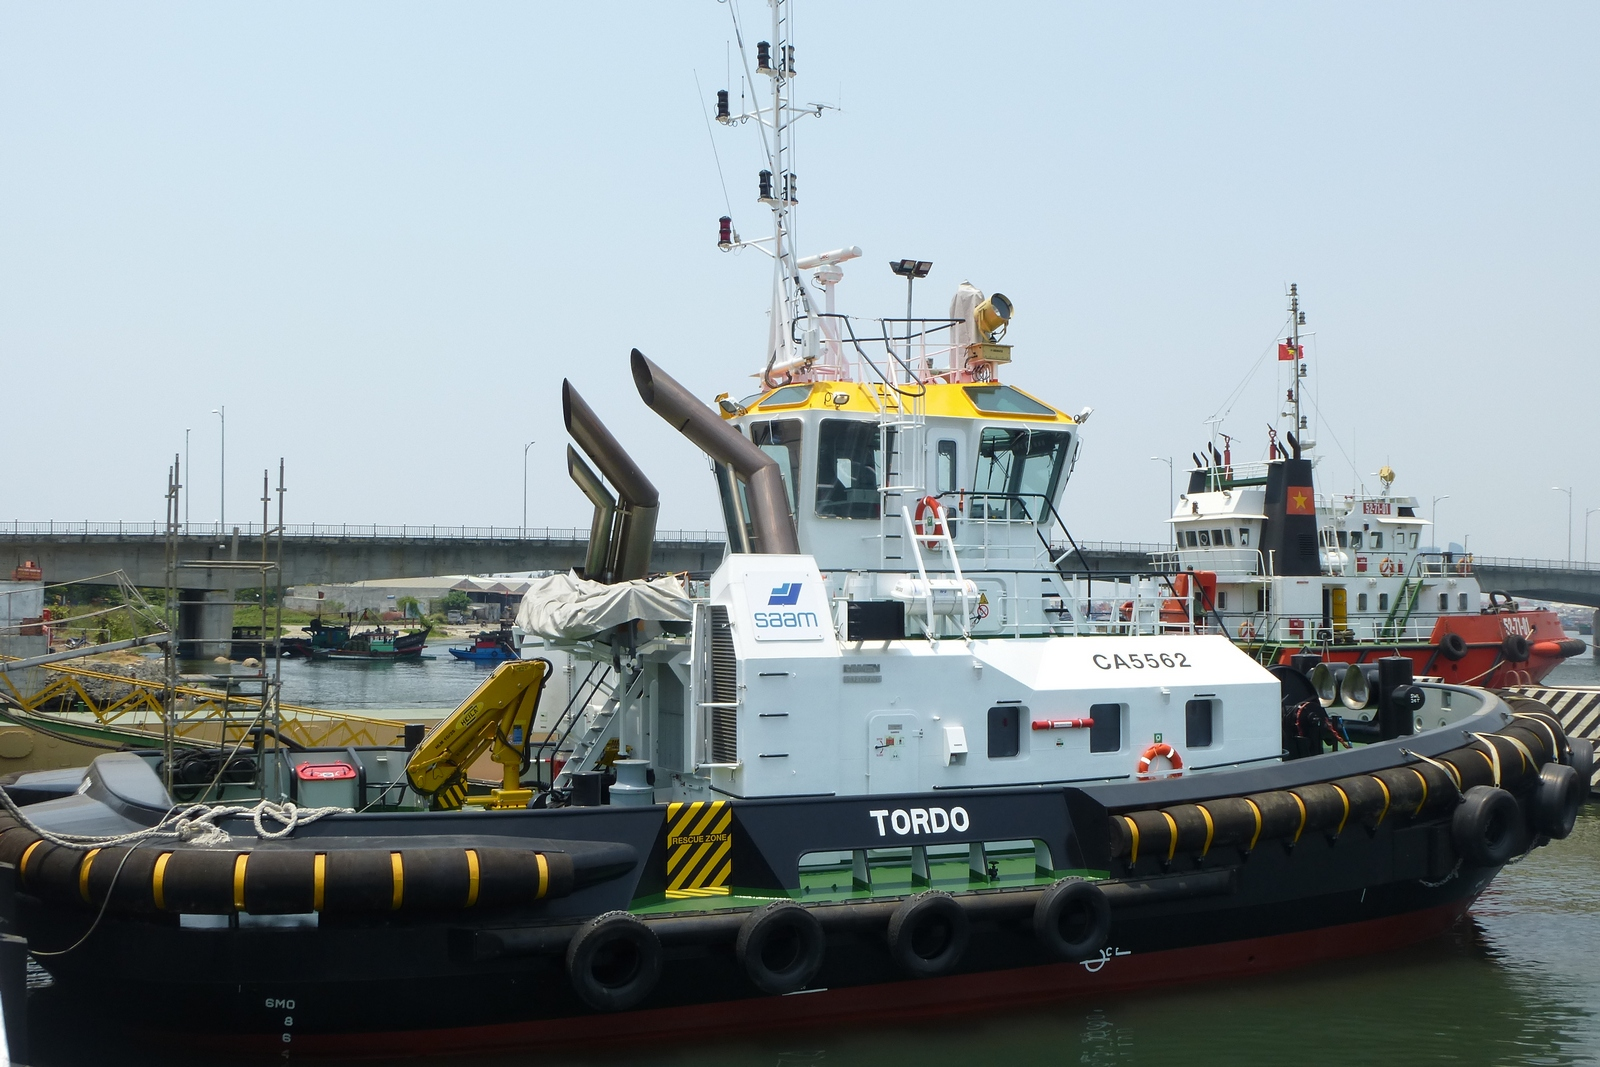 Asd Sa damen delivers two asd tugs 2411 to saam s.a. chile